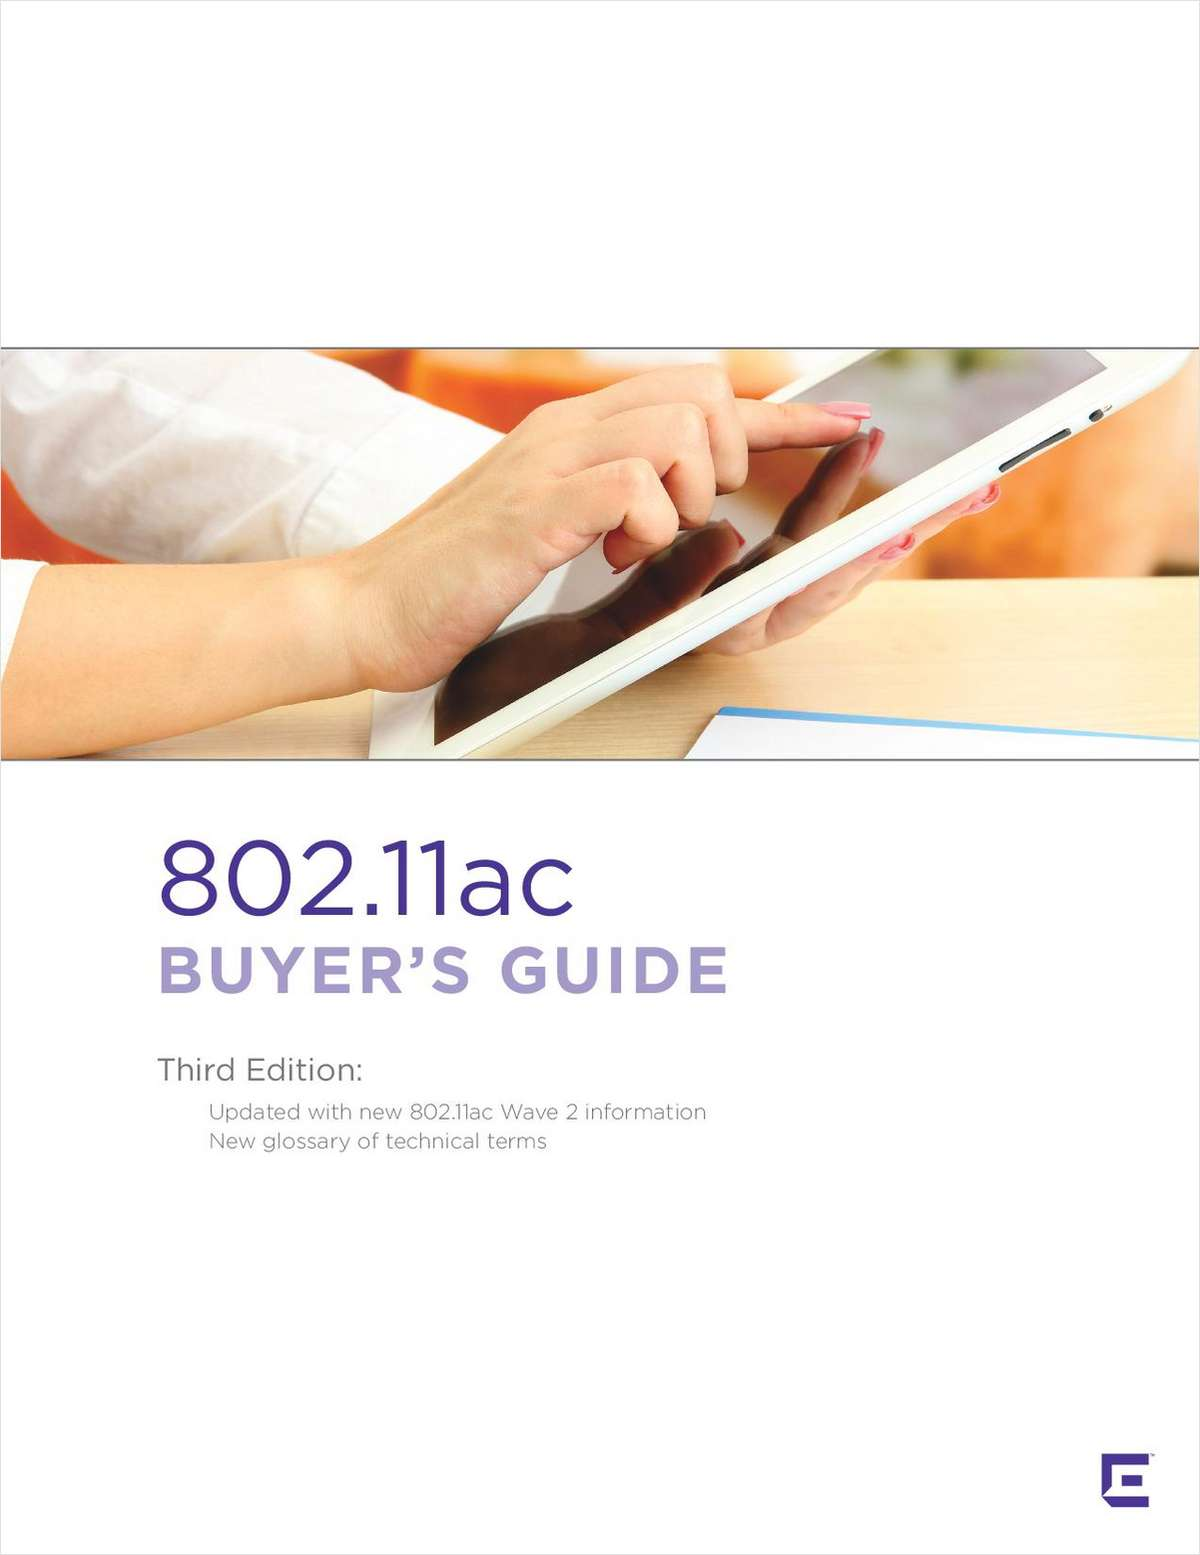 802.11ac Wi-Fi Buyer's Guide